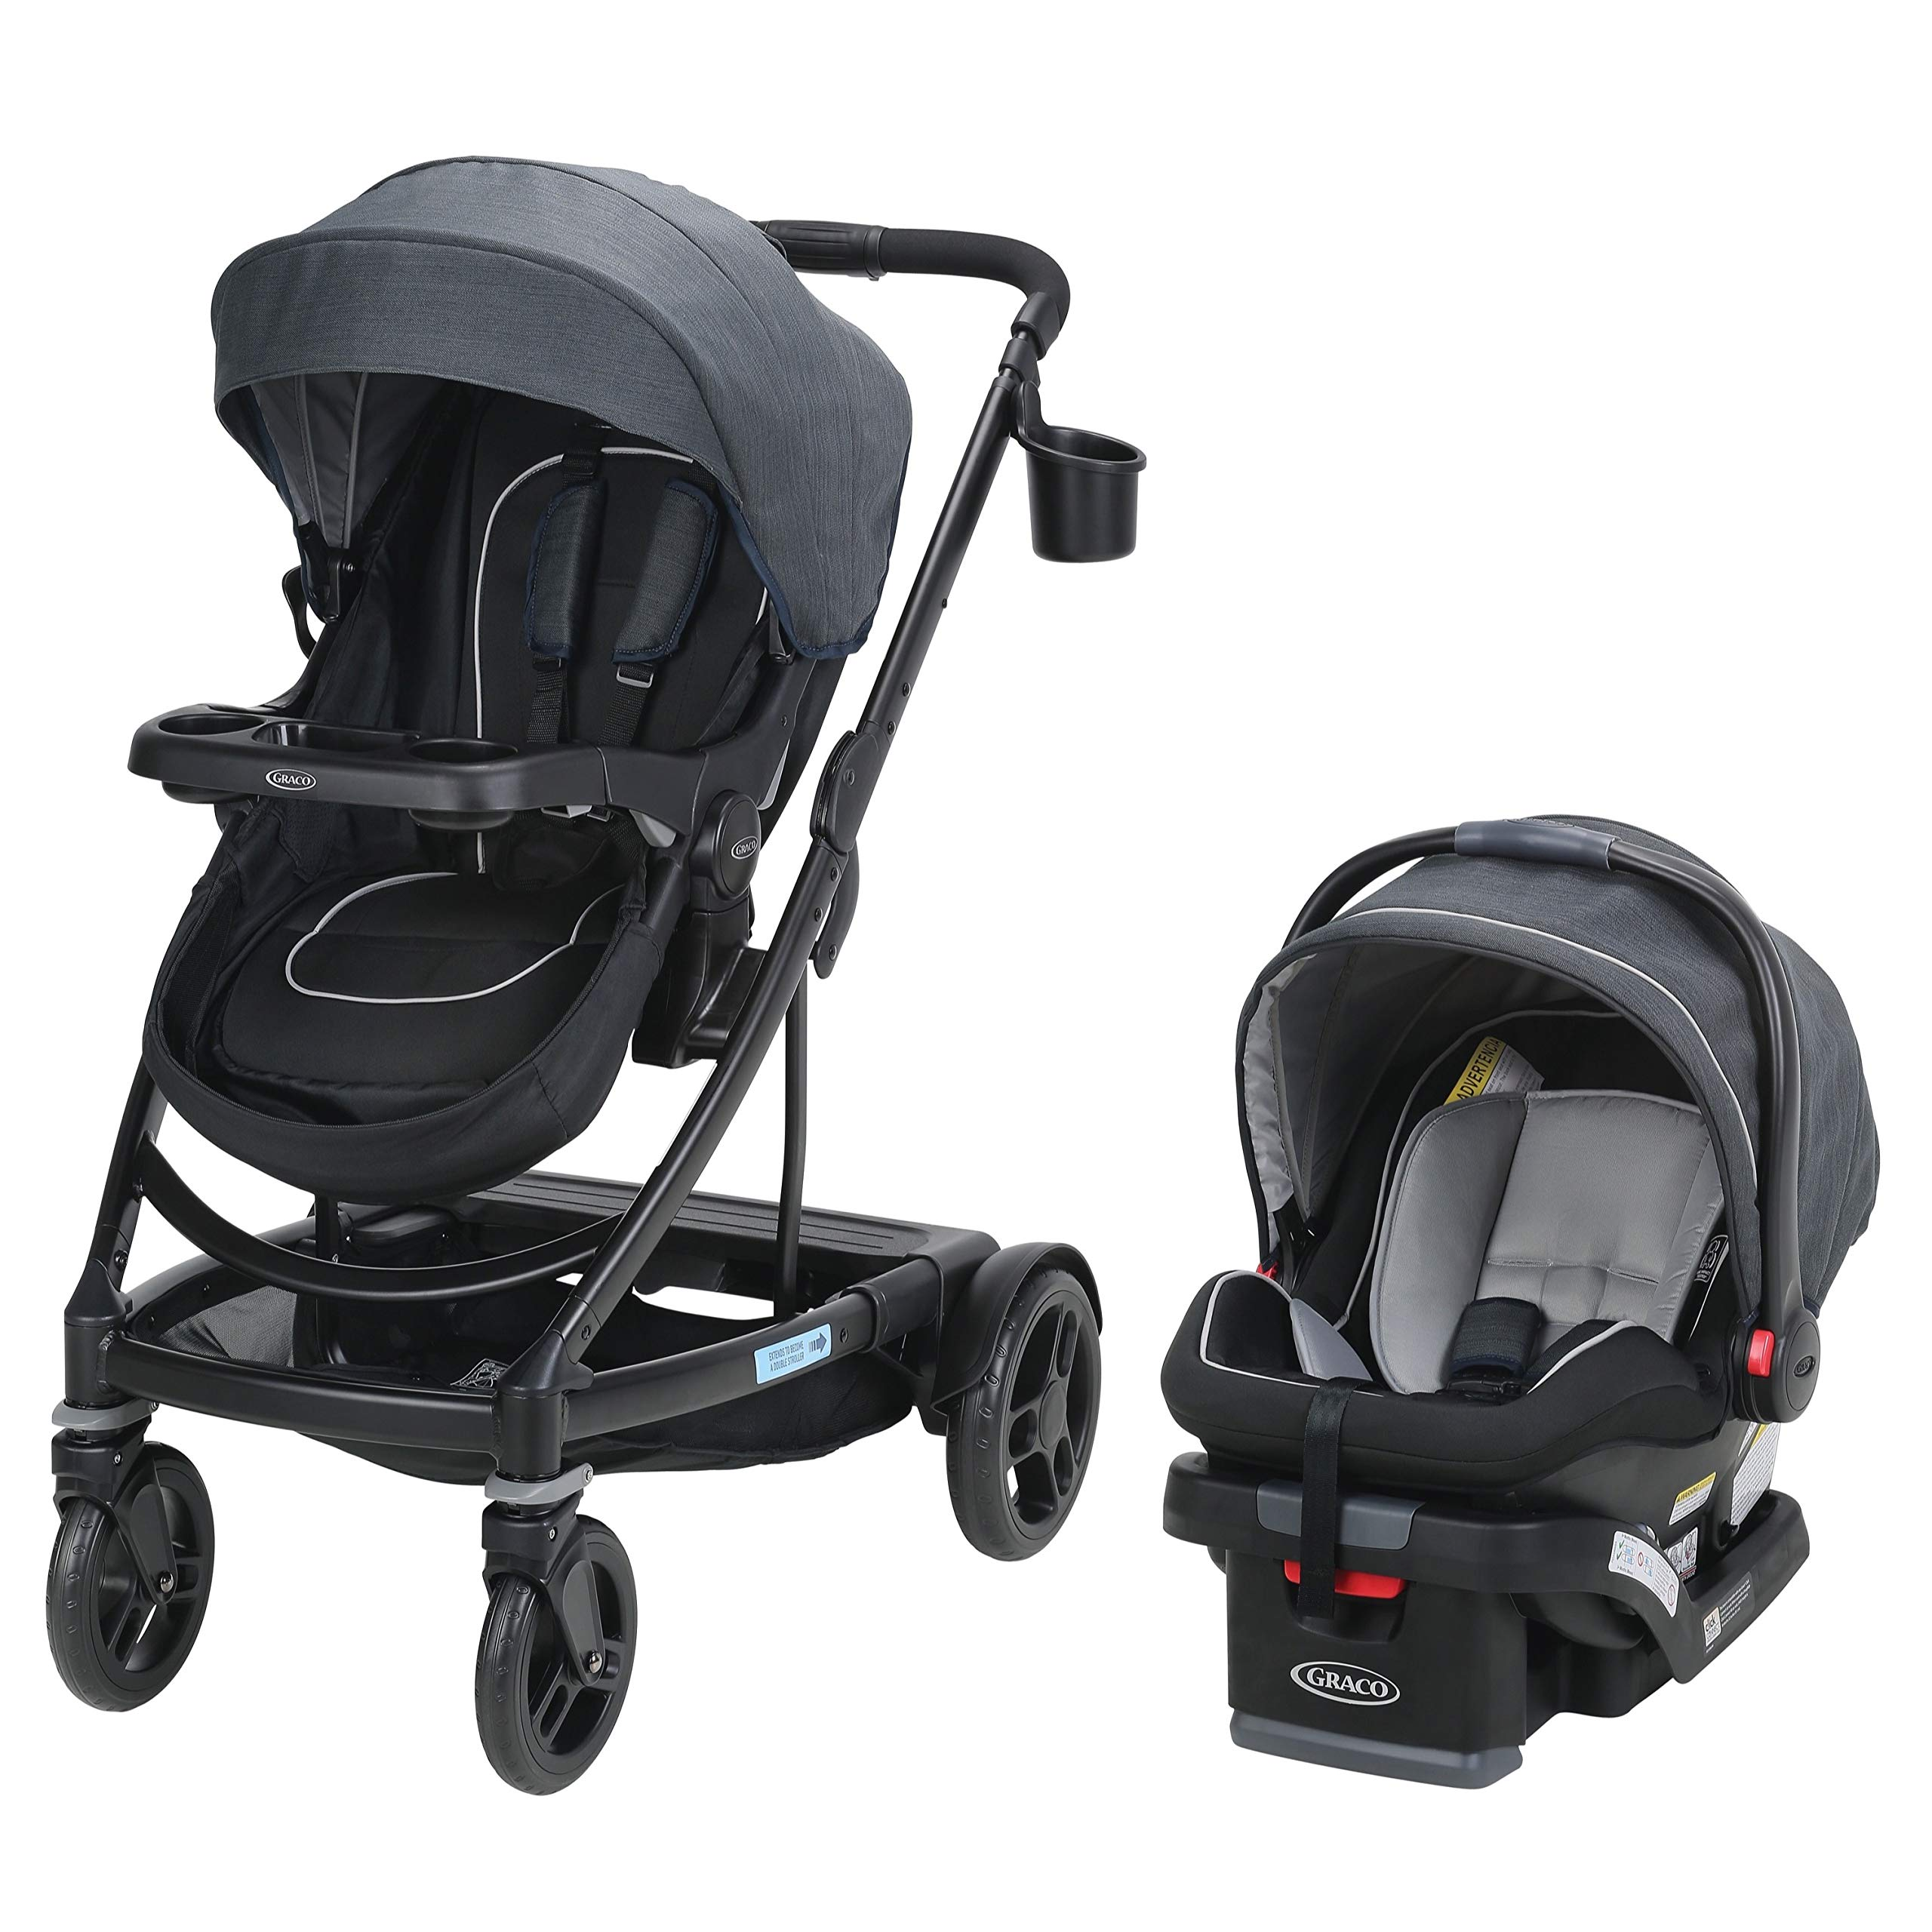 Graco UNO2DUO 2065075 Travel System Stroller, Reece